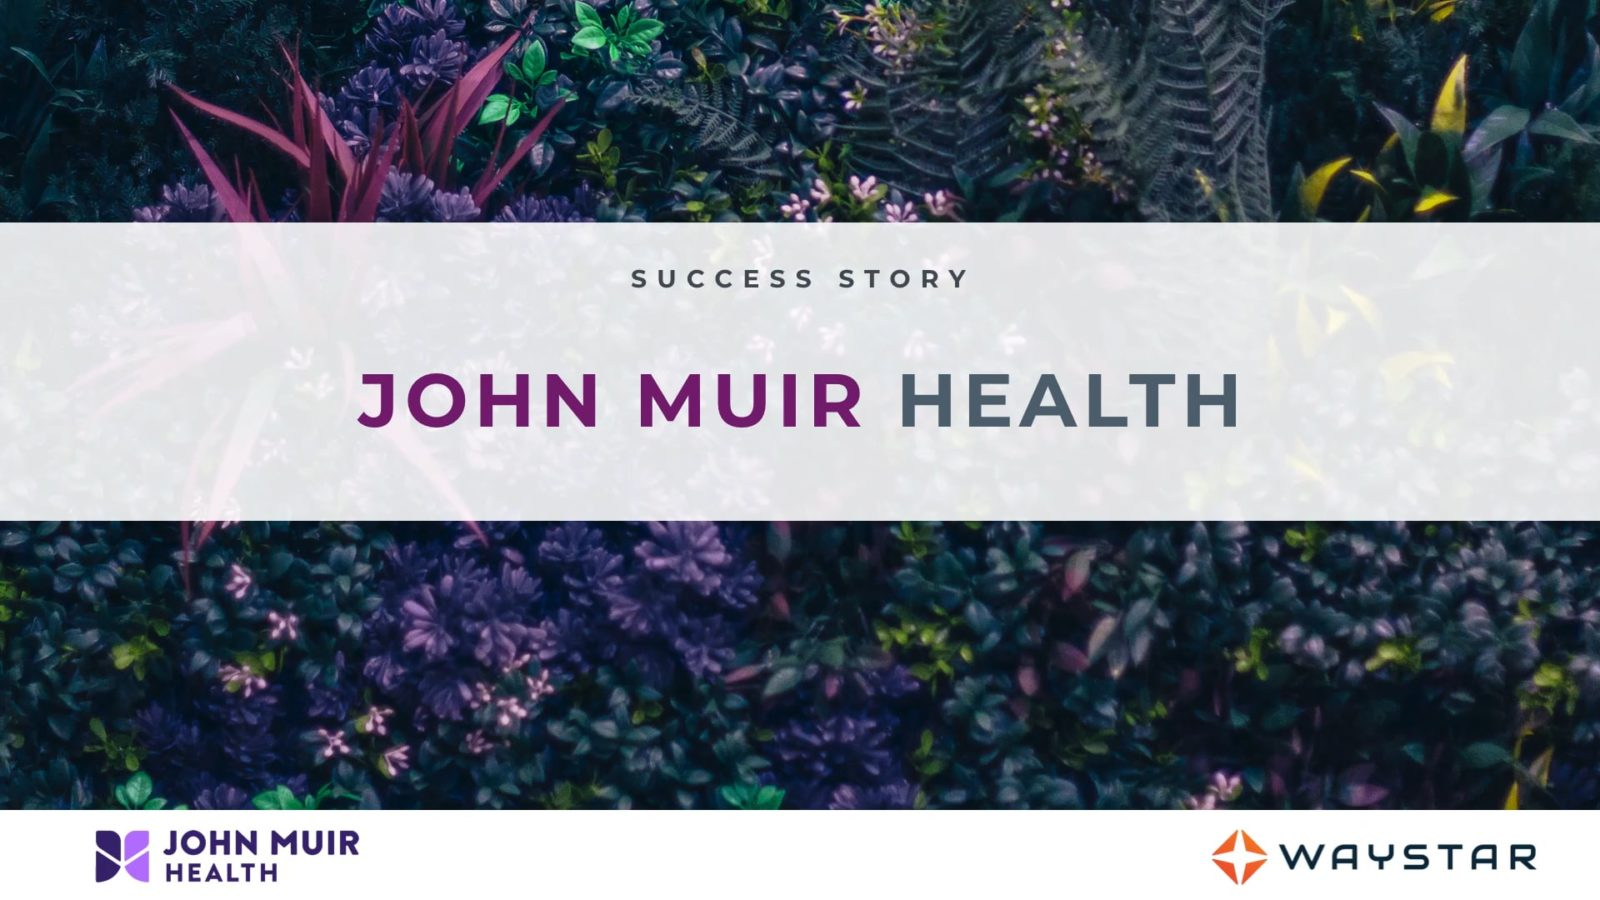 Success story: John Muir Health